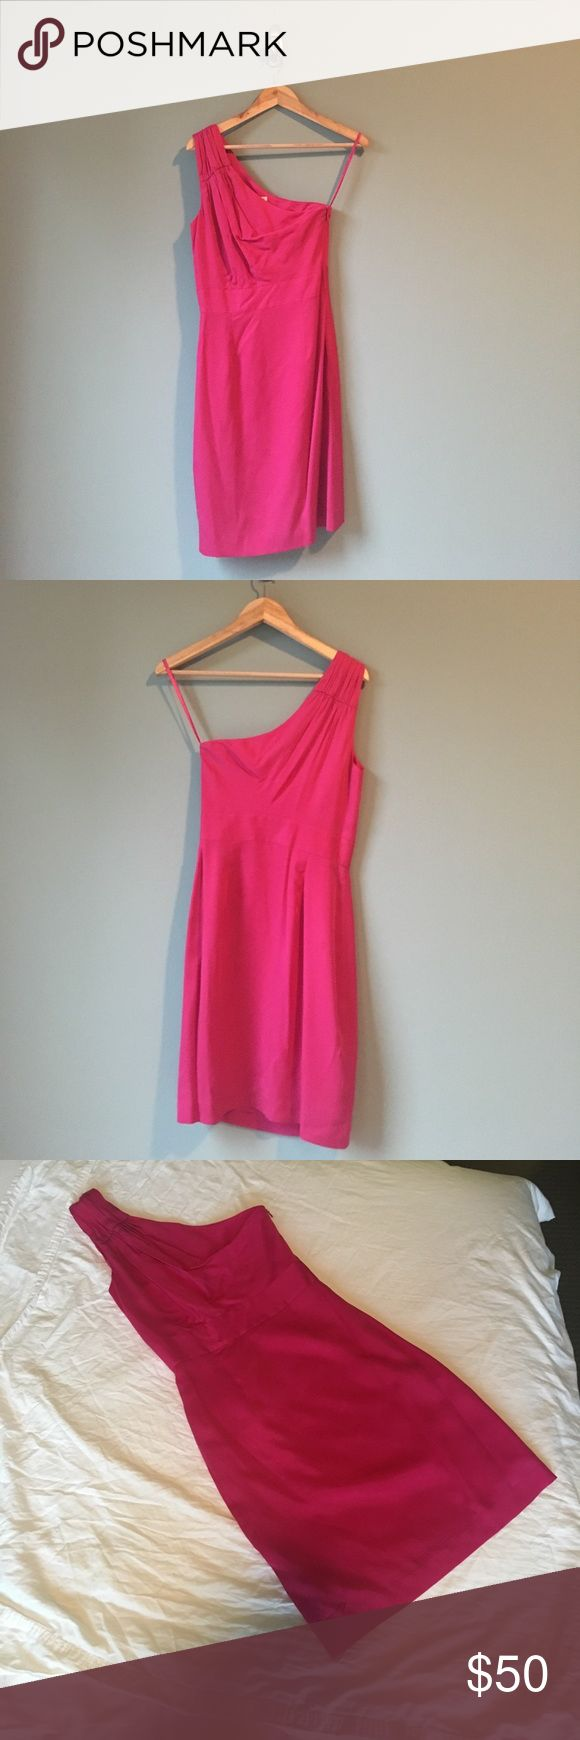 Banana Republic One-Shoulder Pink Dress - 0P Ruched One-Shoulder Hot Pink Dress from Banana Republic - Size 0P; - New Without Tags - Petite Sizing - Ruched detailing at the shoulder - Fully lined - Invisible side zipper with hook and eye closure - Shell 100% Lyocell; Lining 100% Acetate - Machine washable Banana Republic Dresses One Shoulder